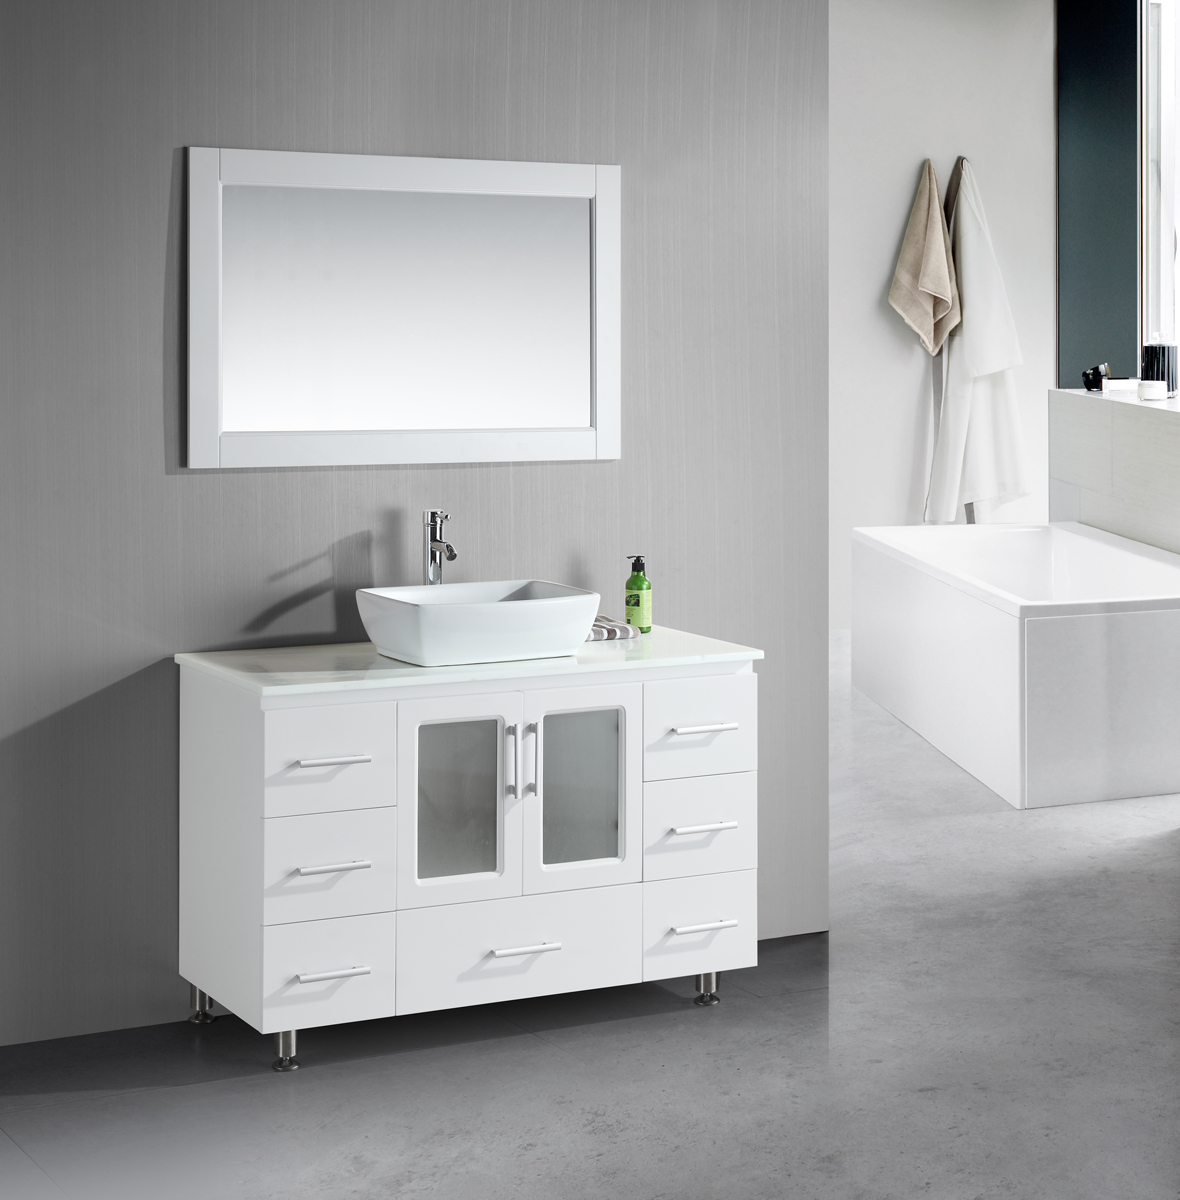 White Bathroom Vanity Ideas Small Bathroom Vanities With Vessel Sinks To Create Cool